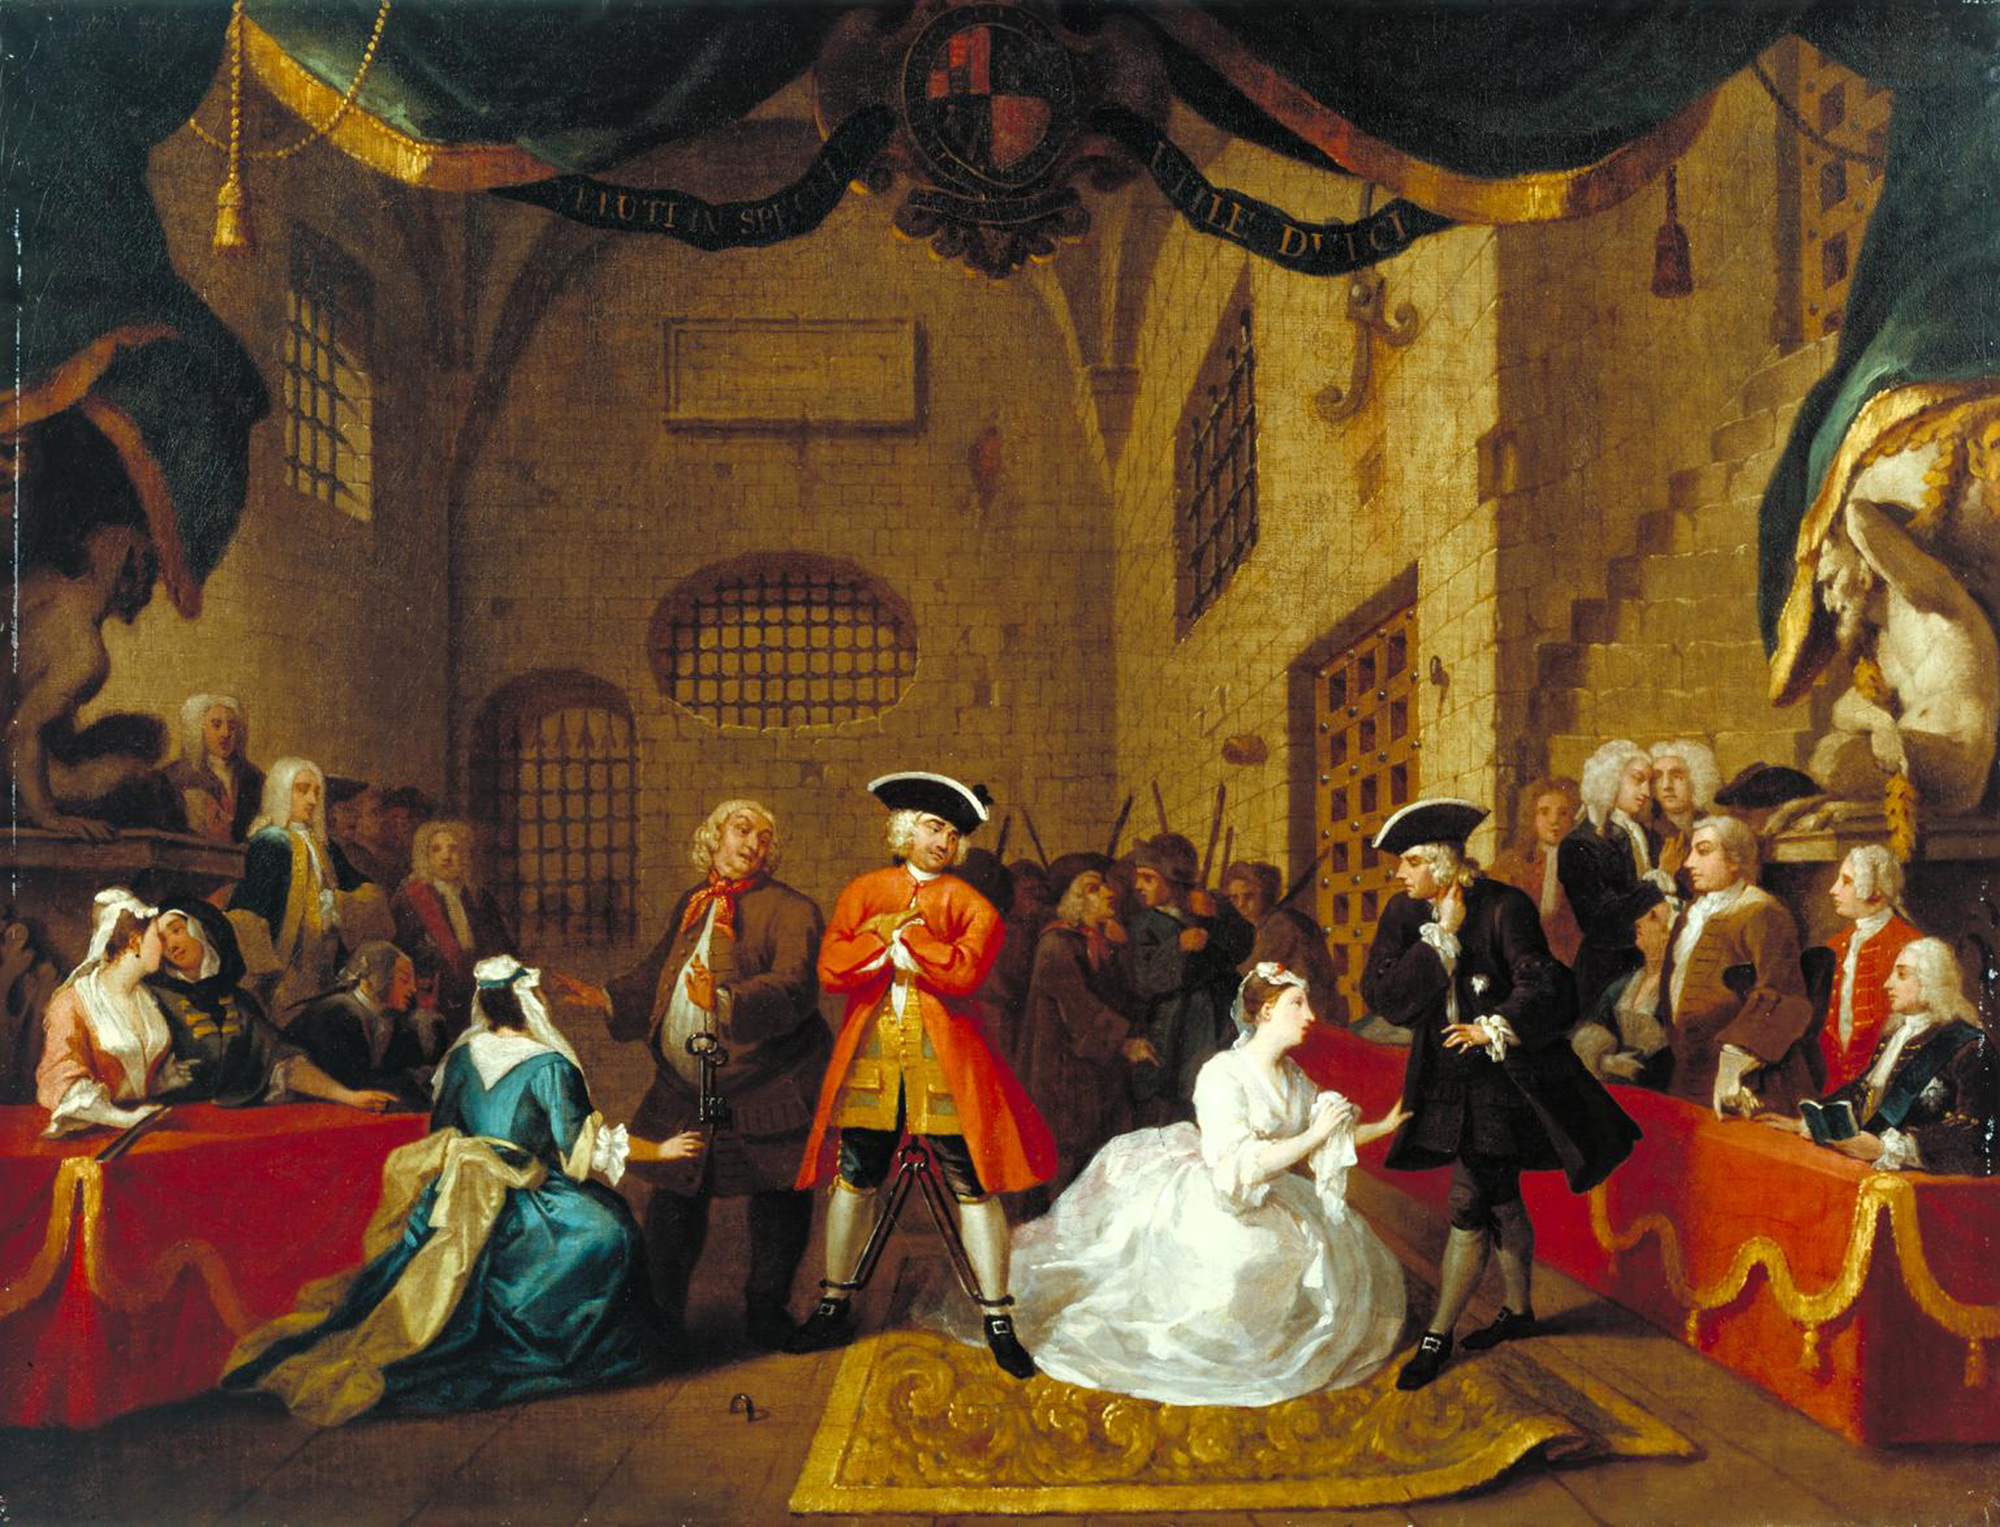 A scene from The Beggar's Opera by William Hogarth, 1731